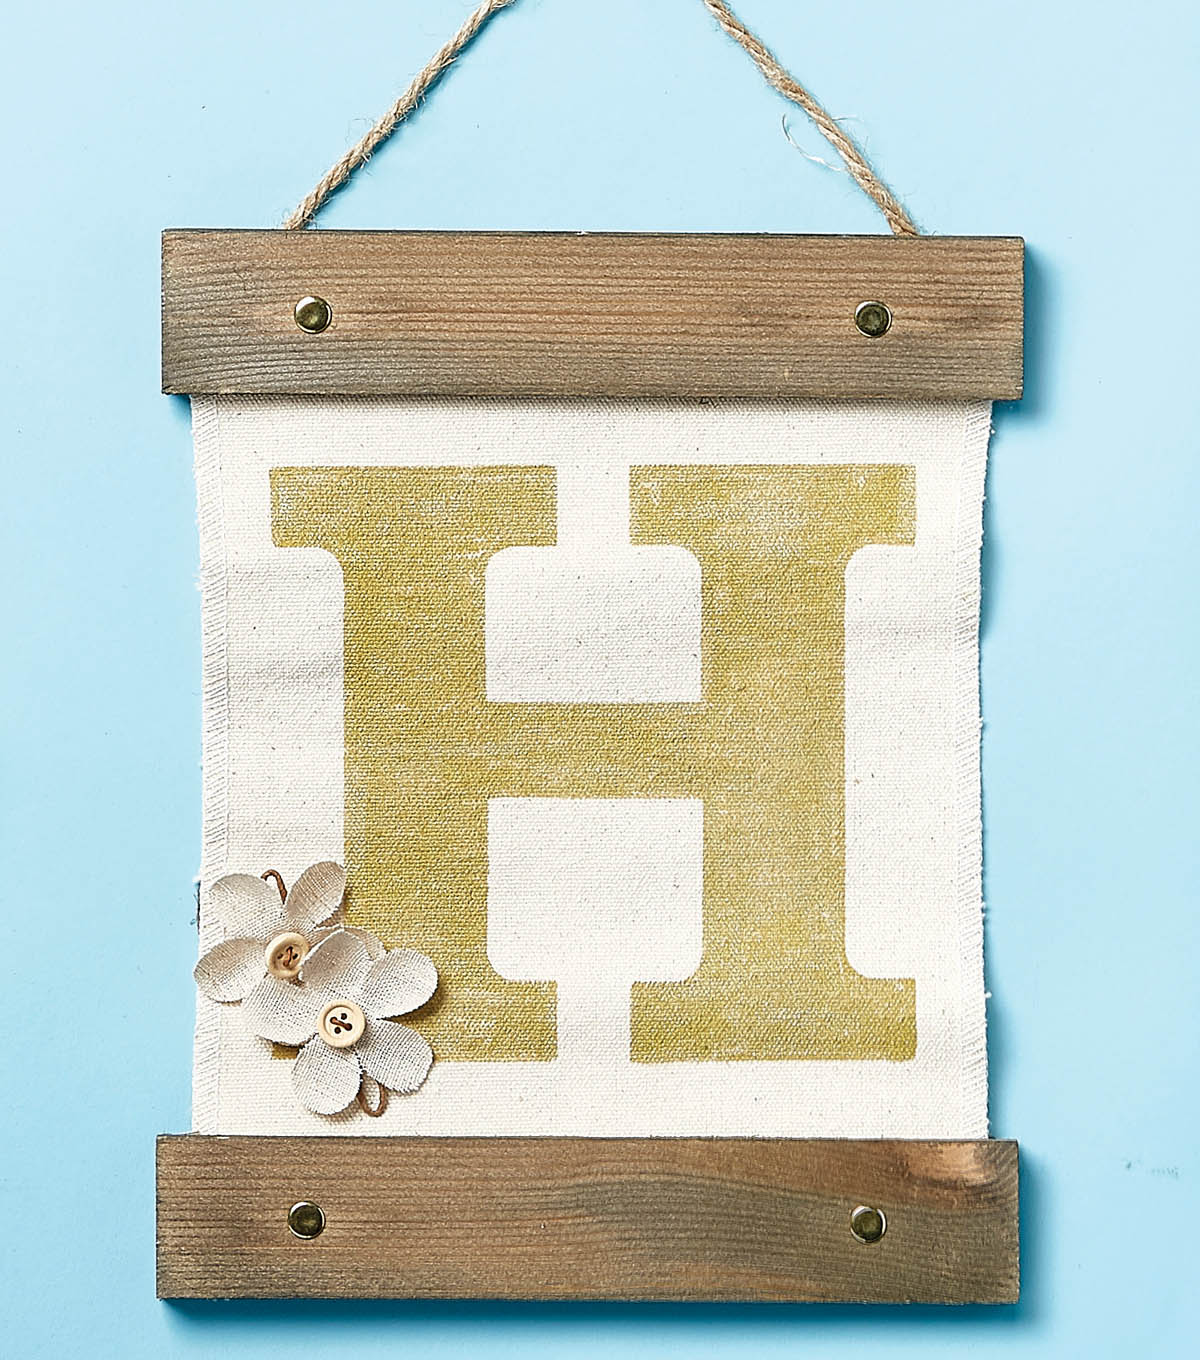 Make A Initial Canvas Wall Hanging | JOANN